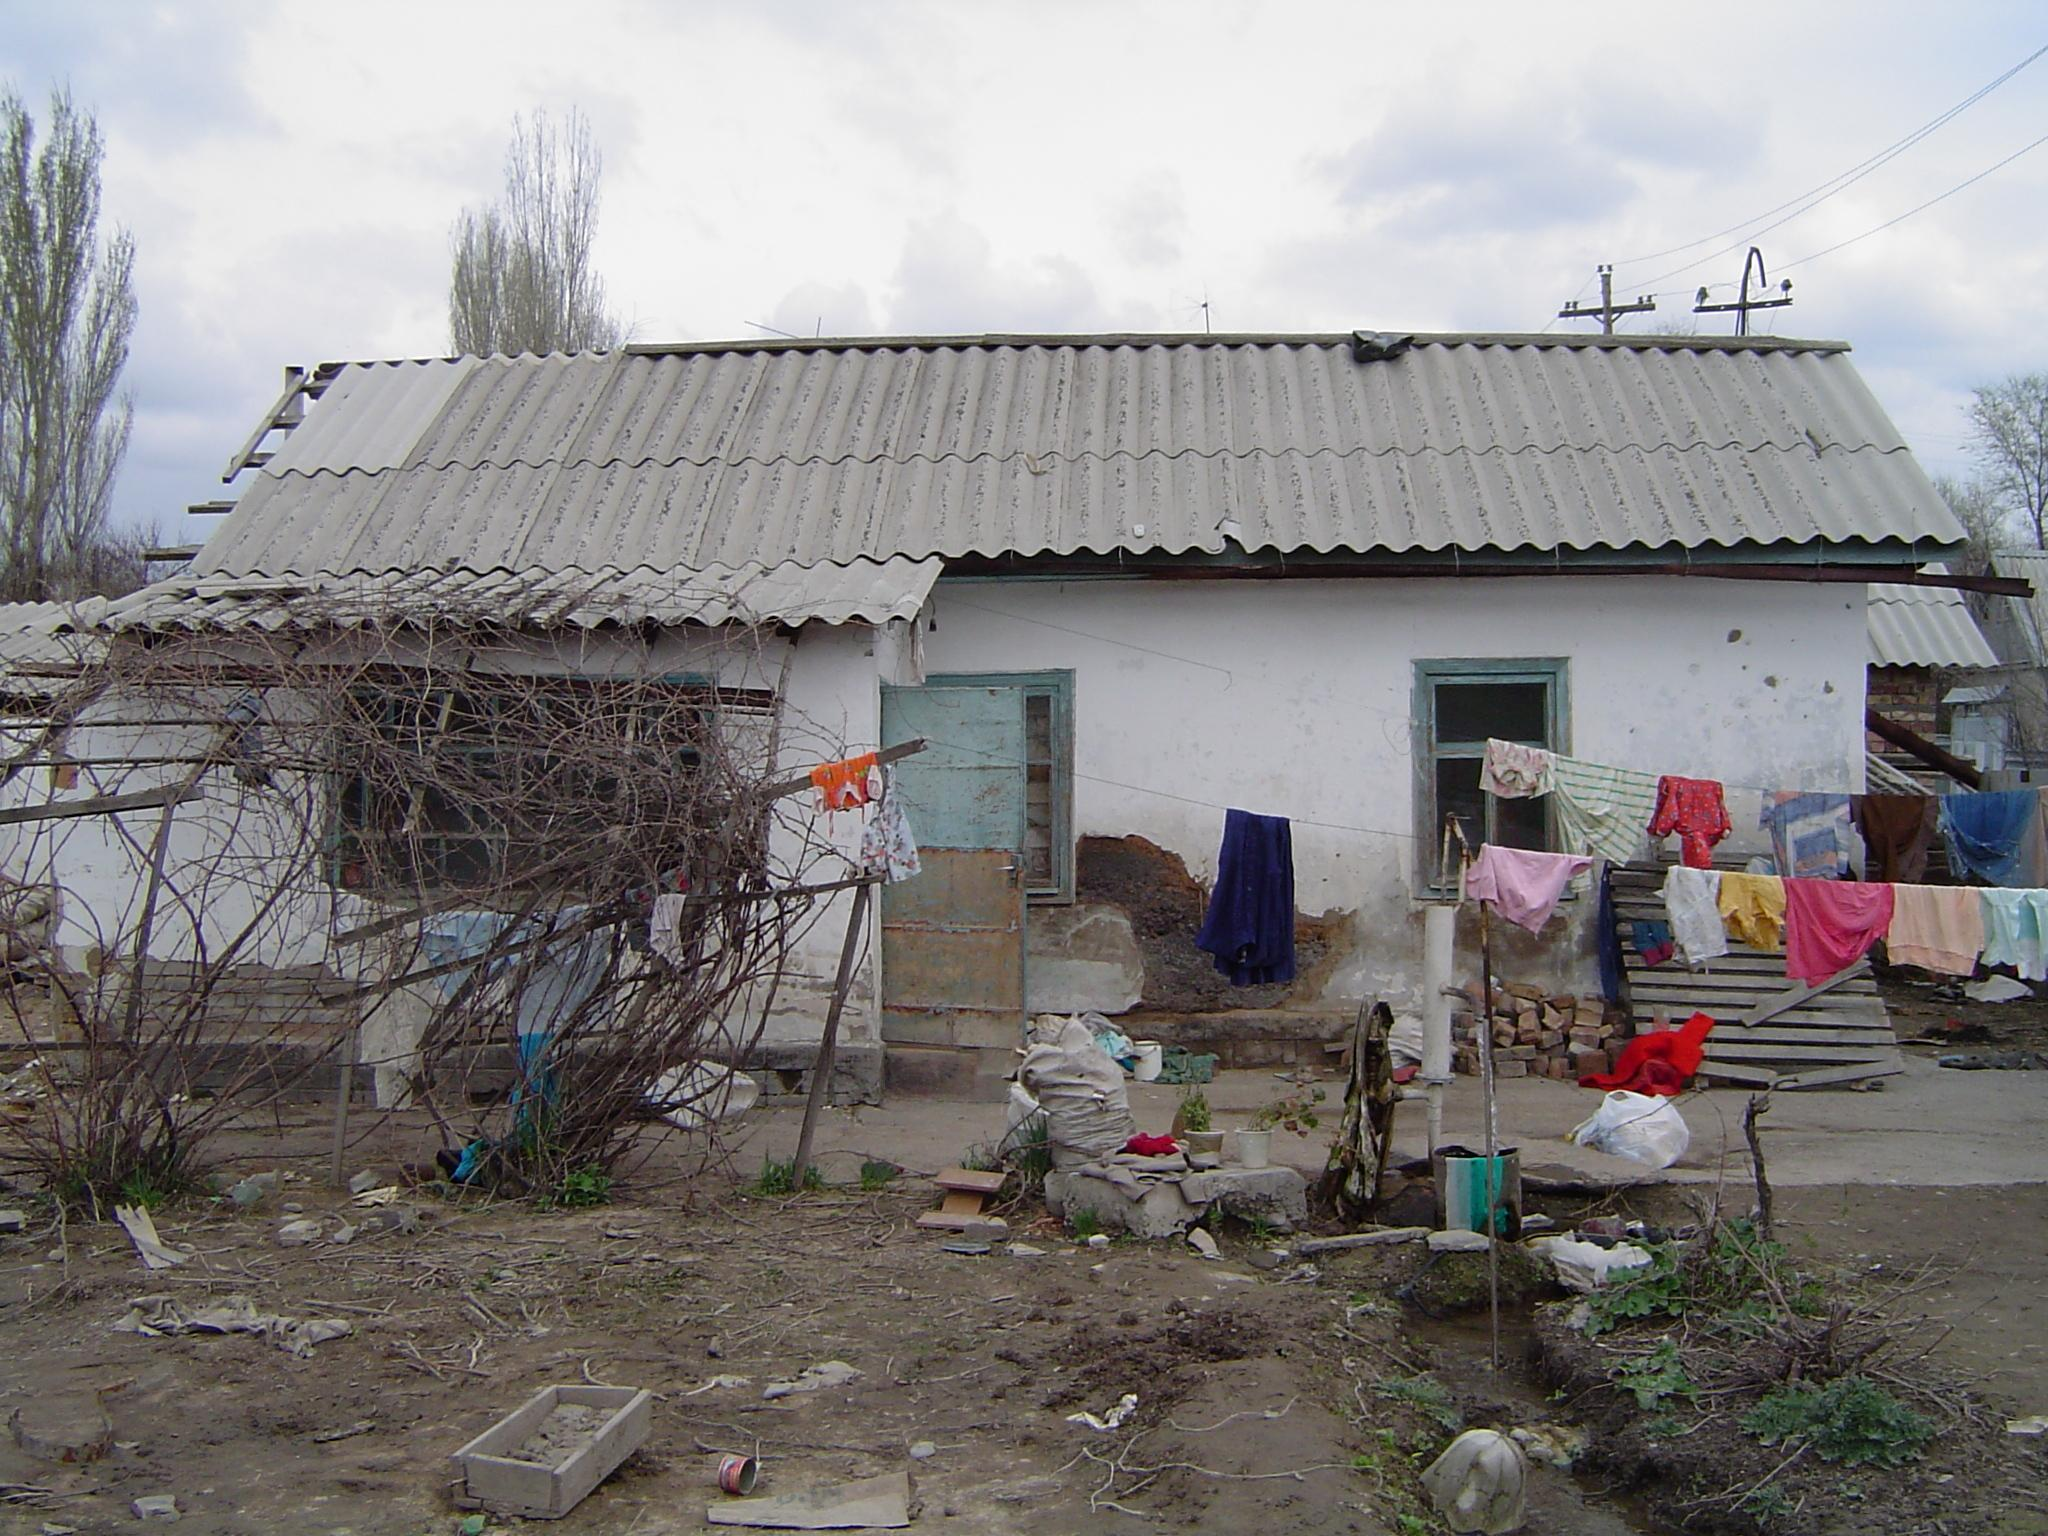 Income Inequality in Kyrgyzstan: The Redistributive Effect Of Social Benefits